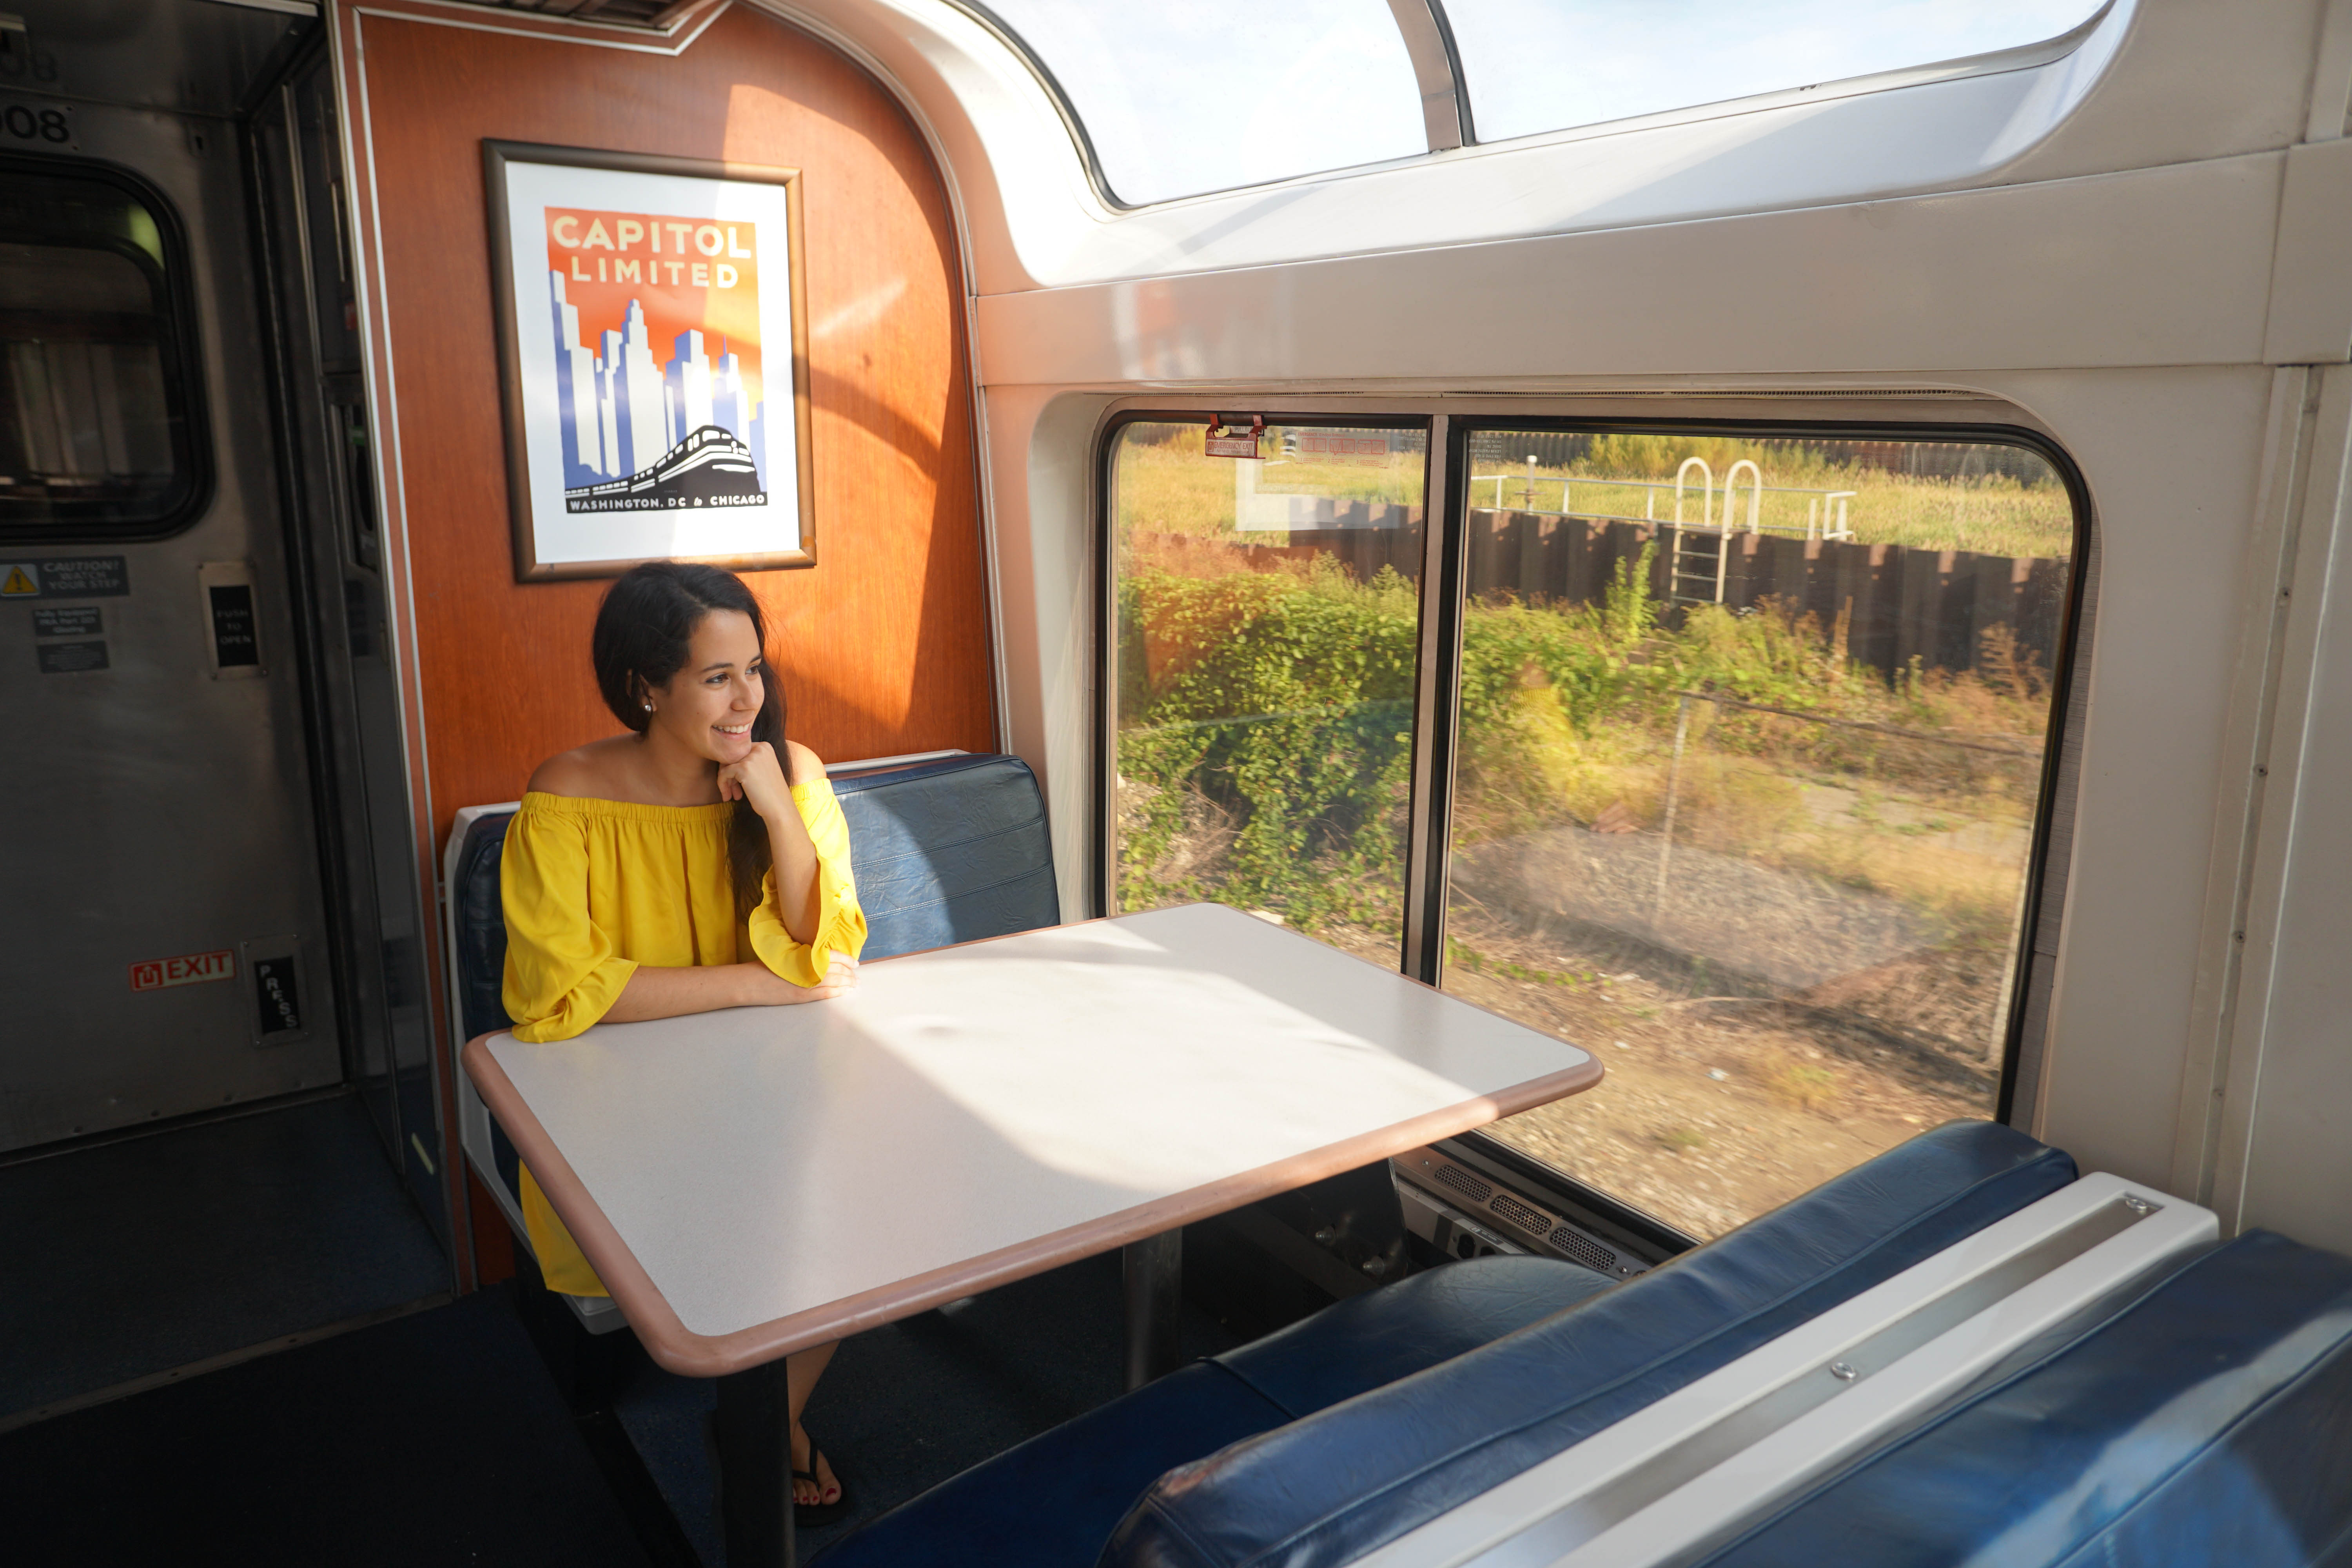 Capitol Limited poster at table with woman looking out window